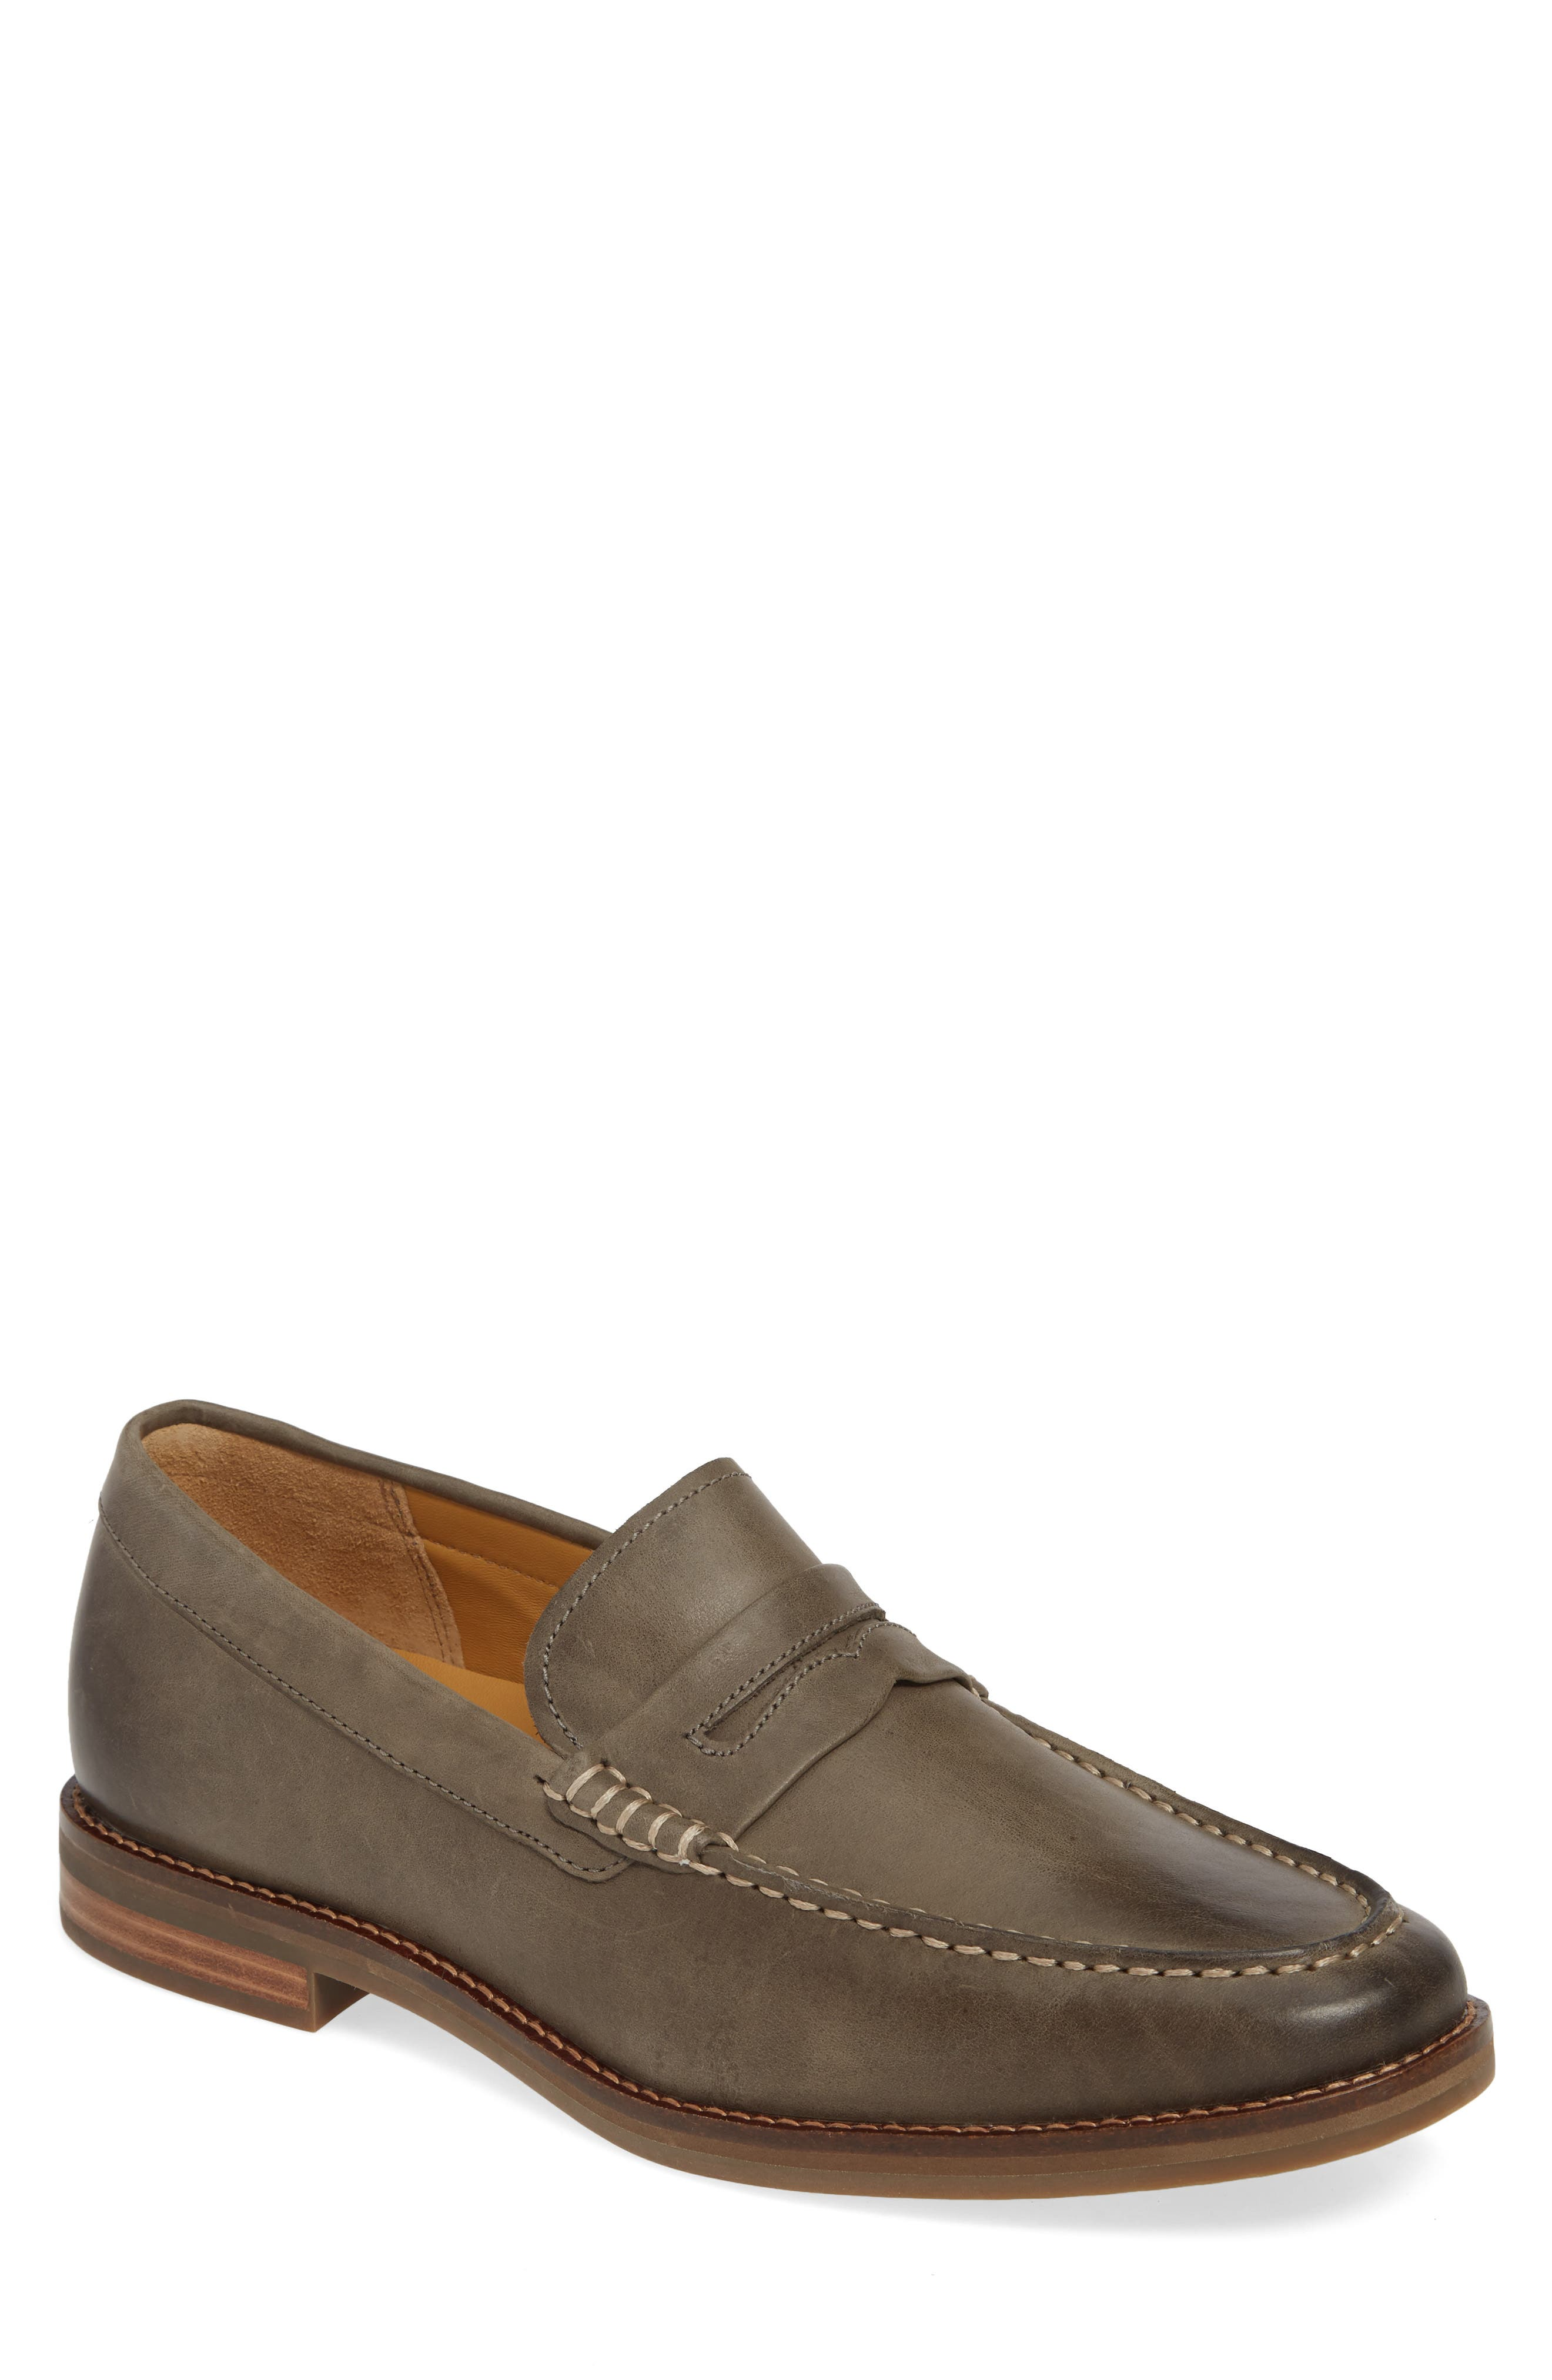 SPERRY Exeter Penny Loafer, Main, color, GREY